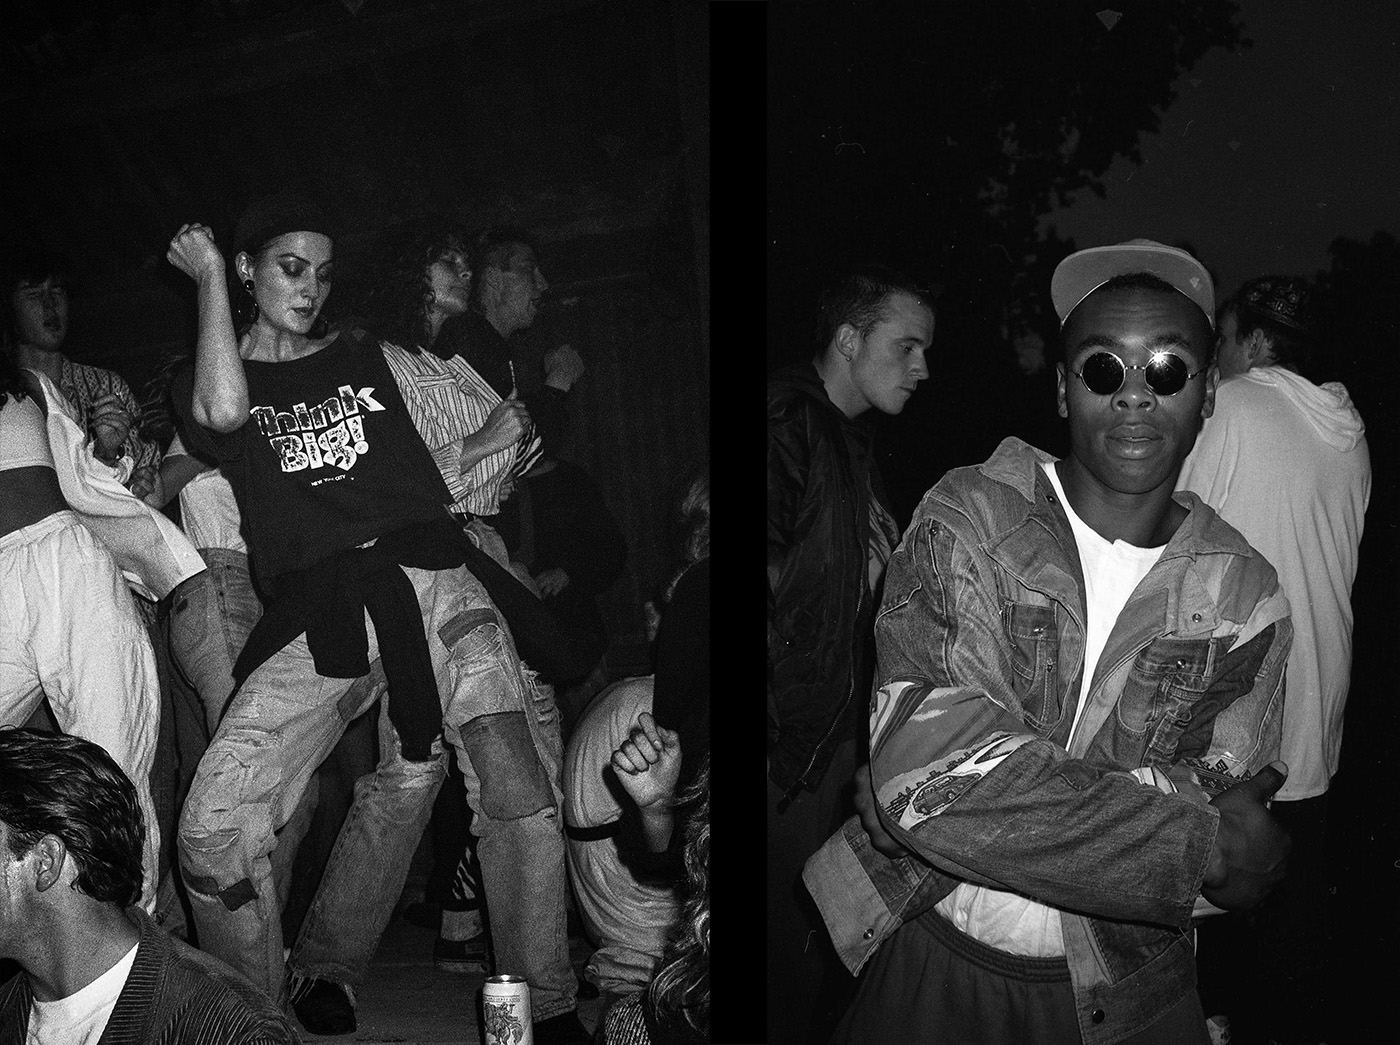 Two ravers at an underground warehouse rave during the second summer of love, 1980s by Gavin Watson